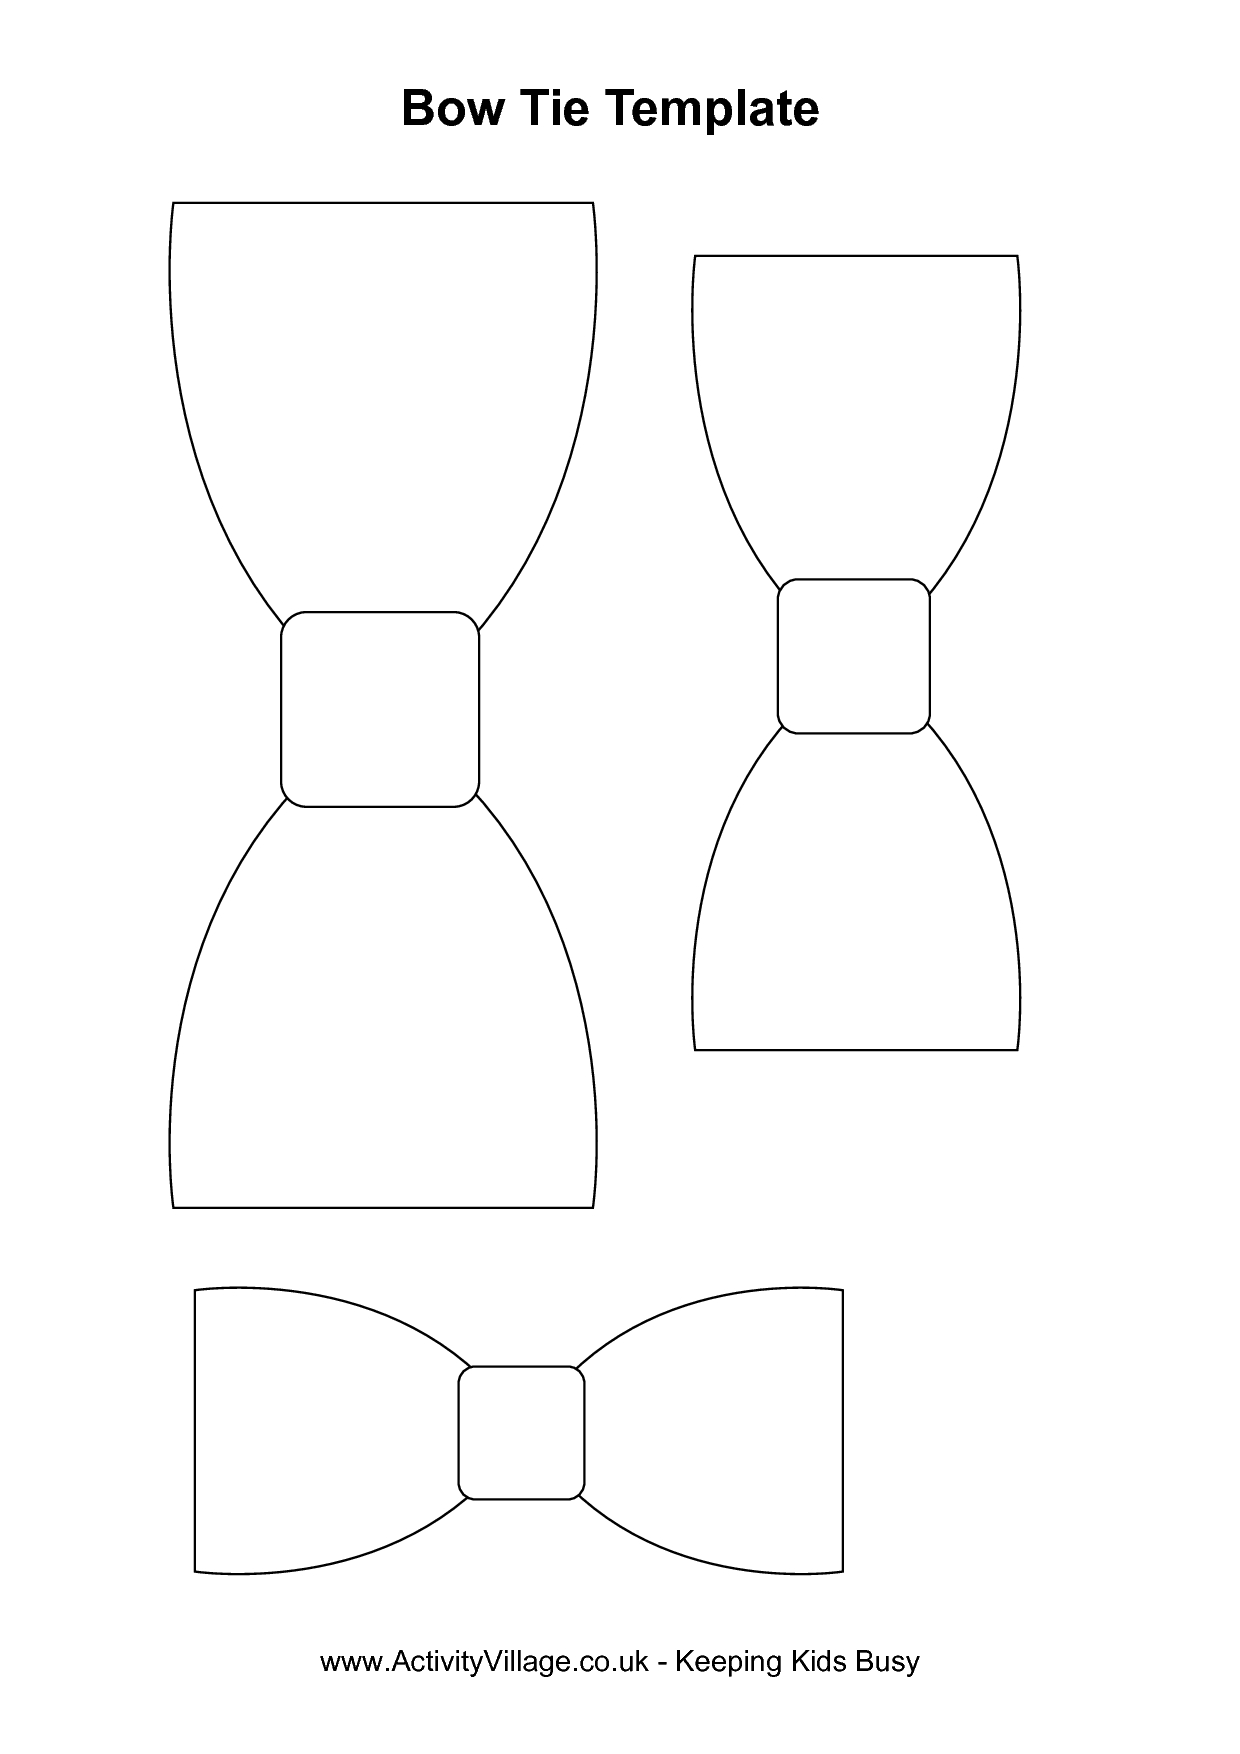 Free Coloring Pages   Mad Scientist Party In 2019   Pinterest   Baby - Free Printable Tie Template